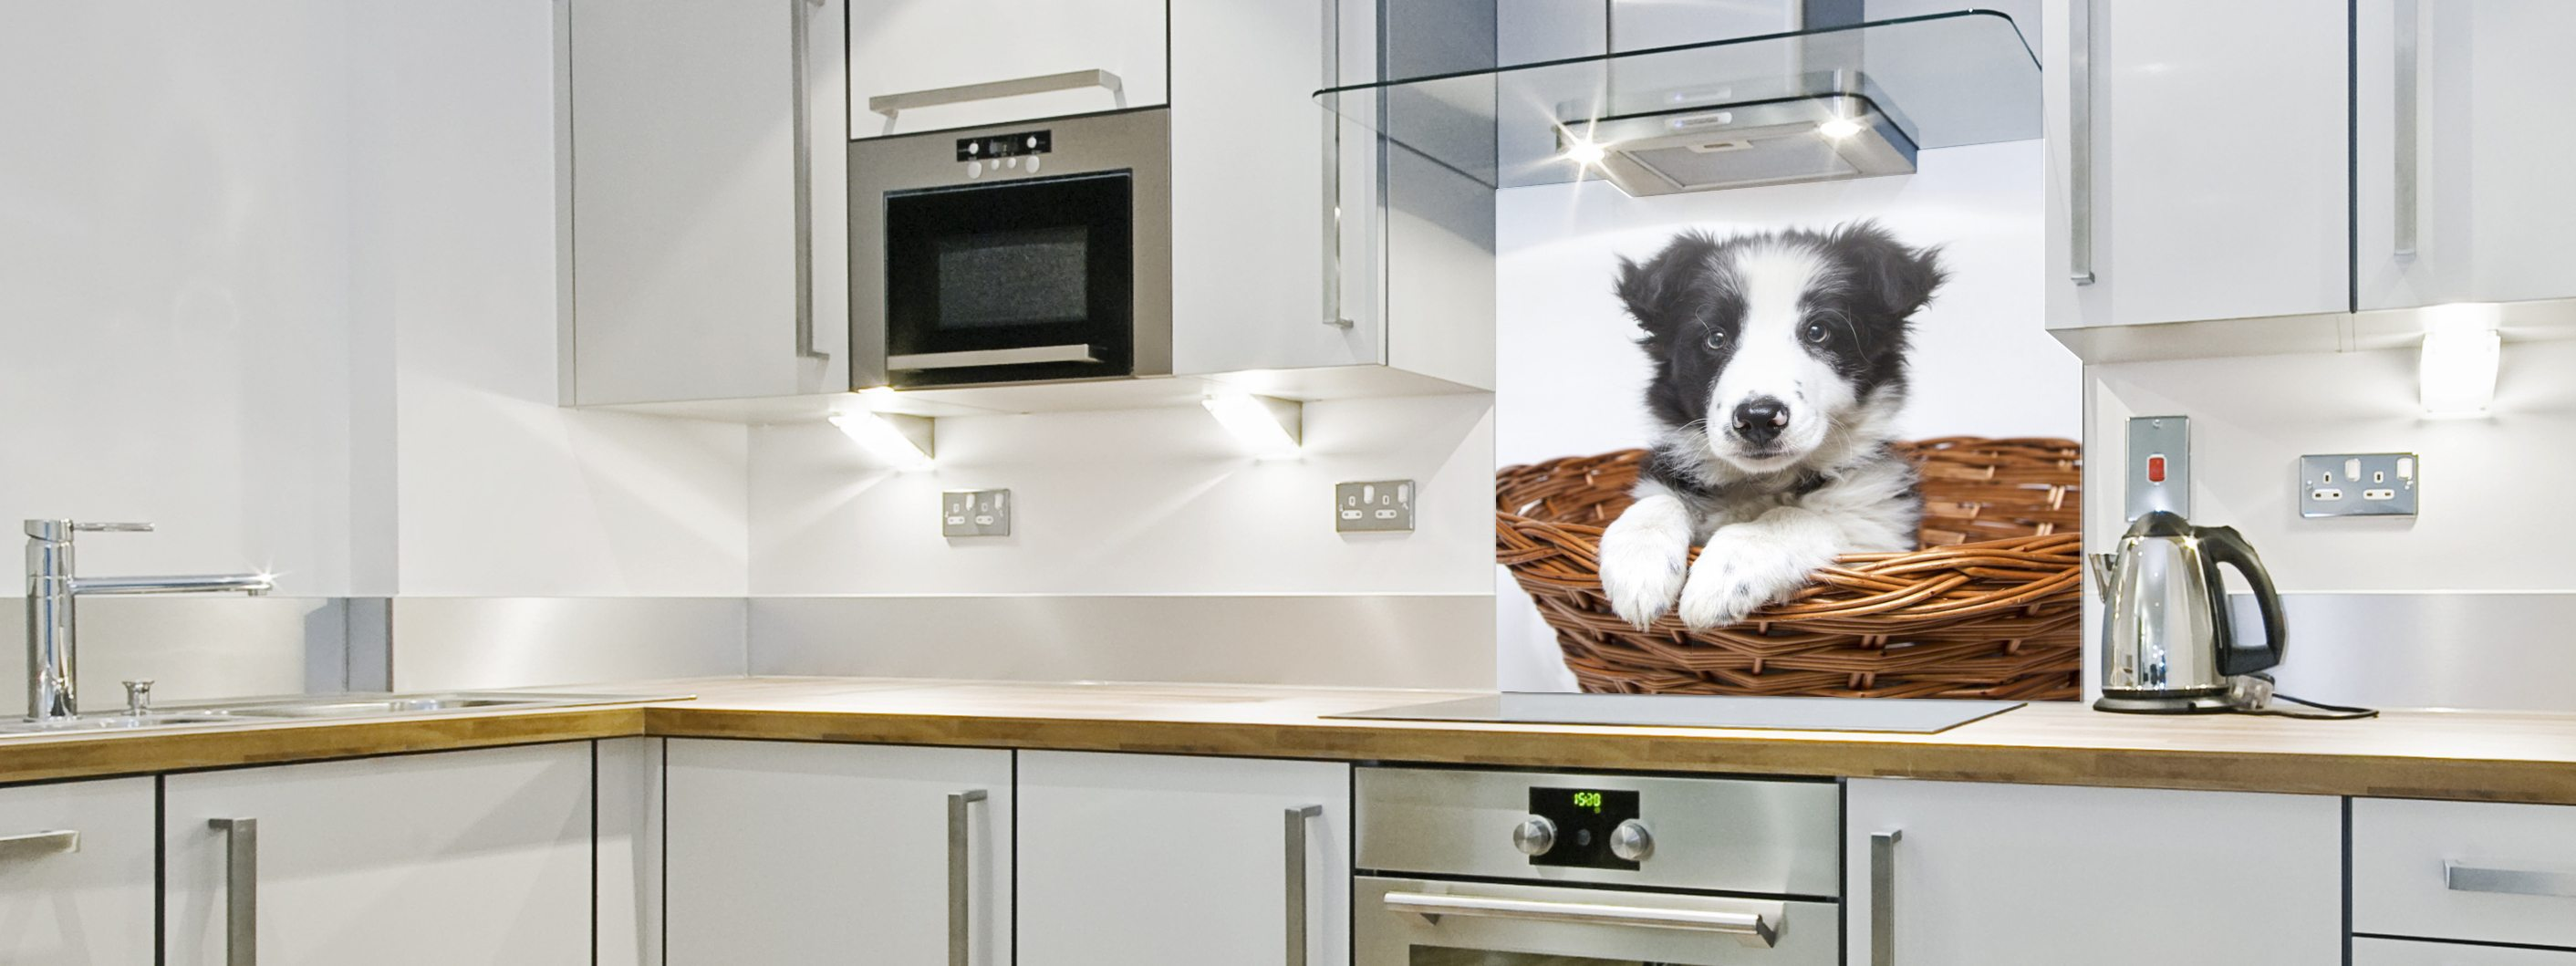 Collie Puppy - Printed Glass Splashback